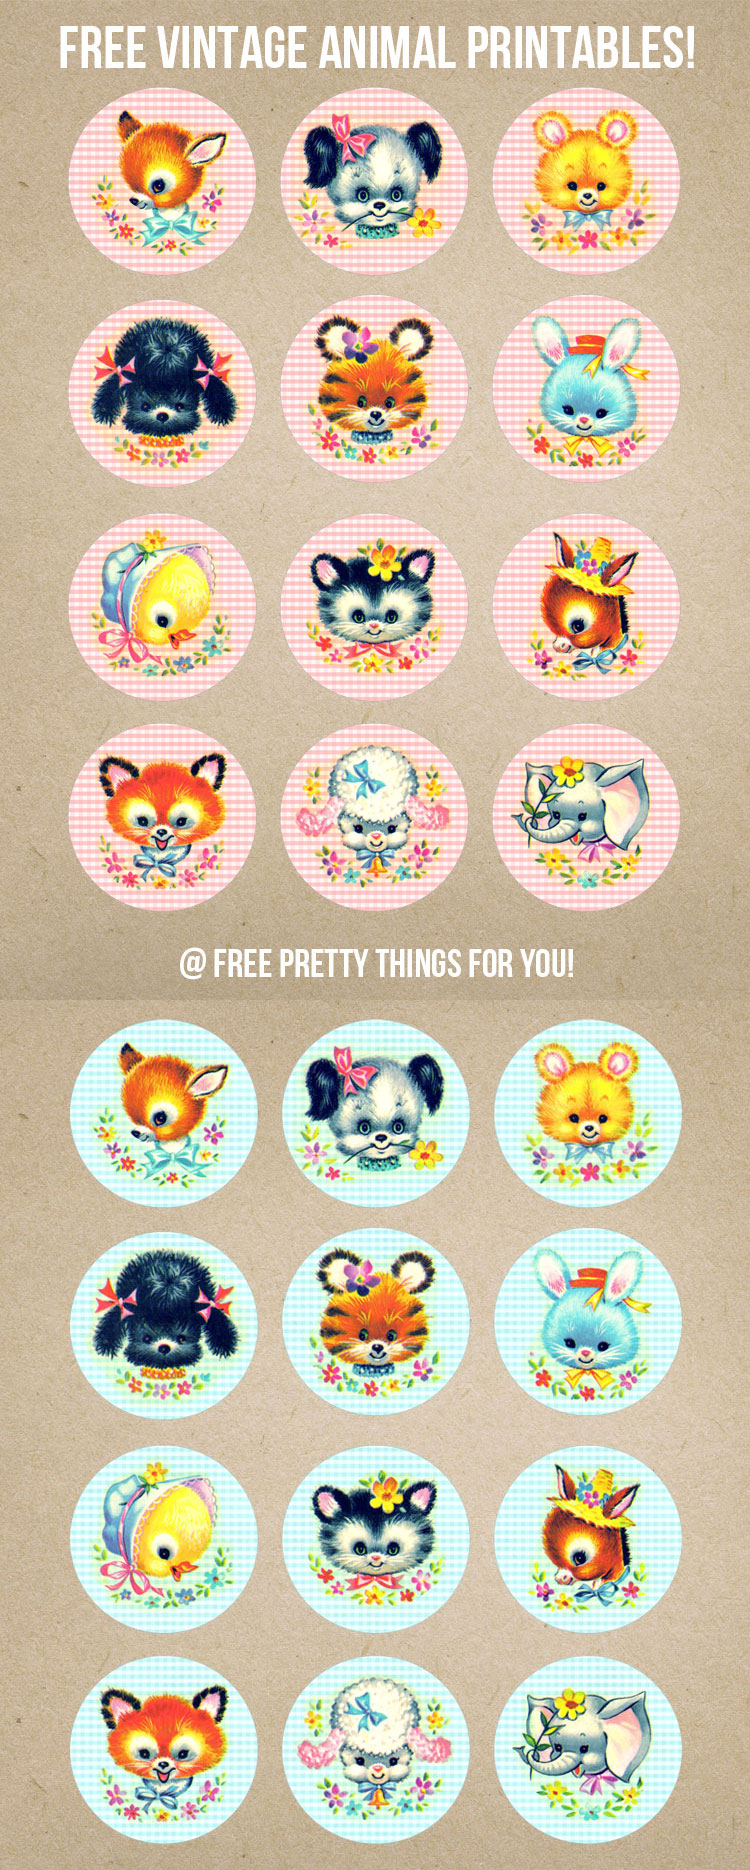 Vintage_Stock_Kitschy_Baby_Animal_Circles_FPTFY_7